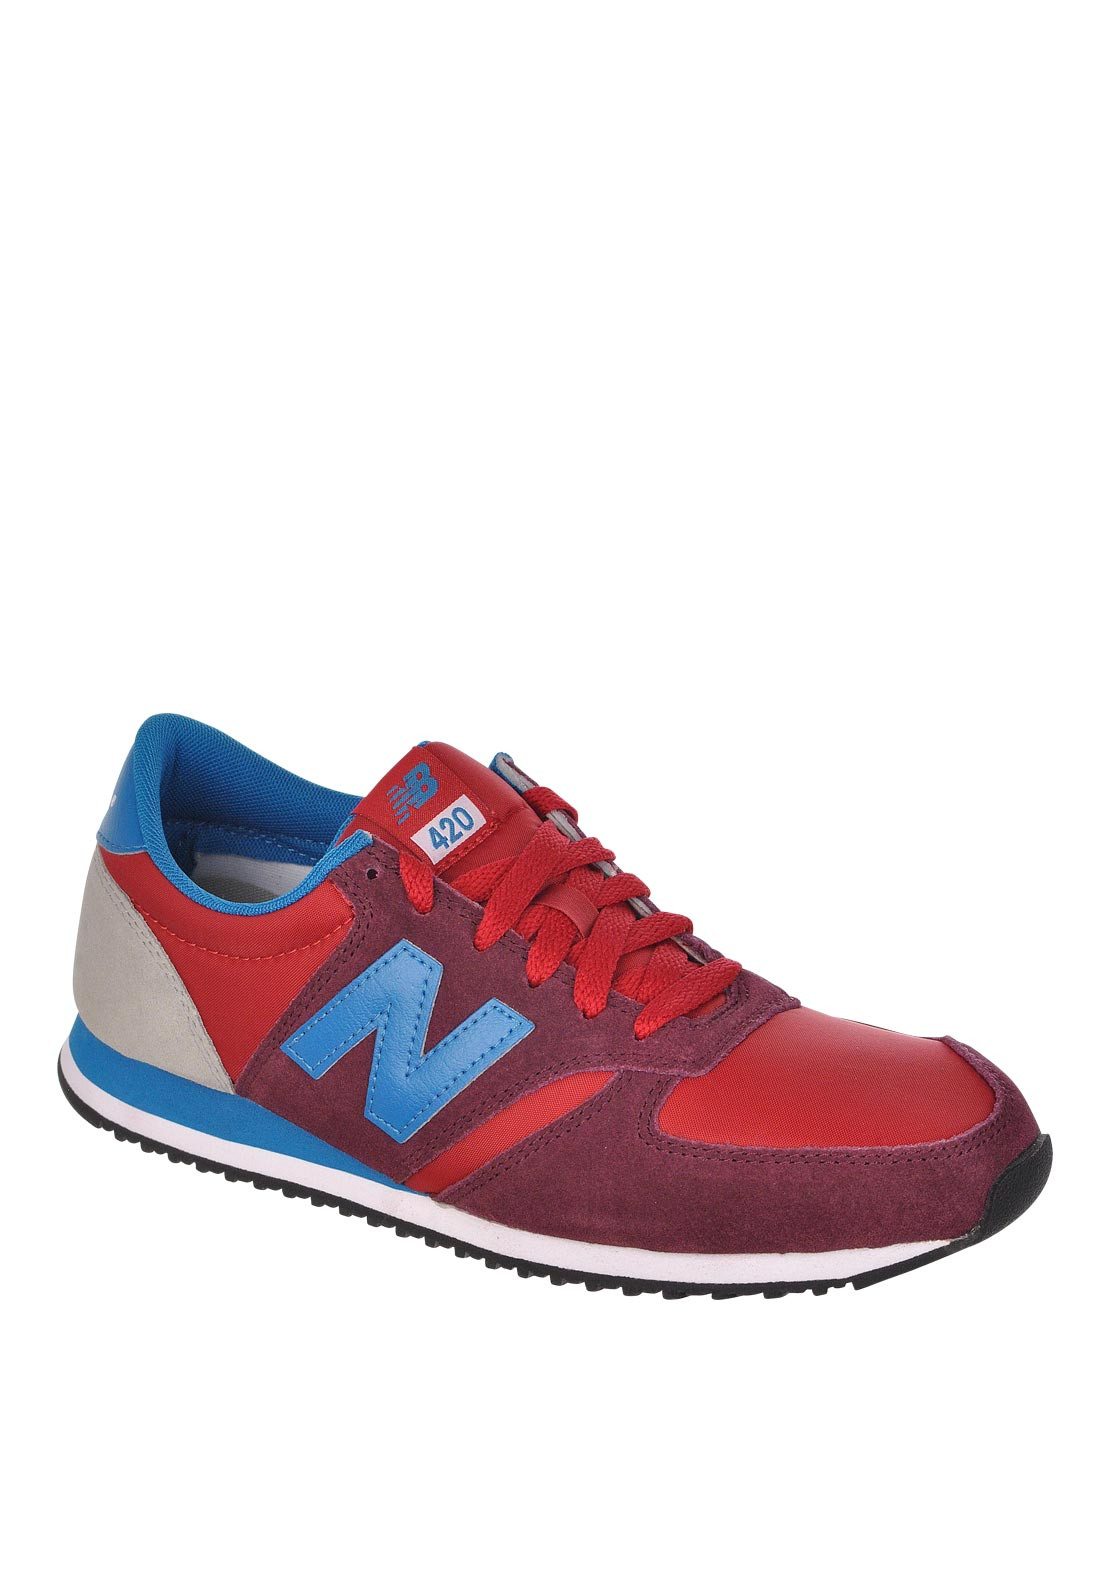 New Balance Mens 420 Fashion Runners, Red